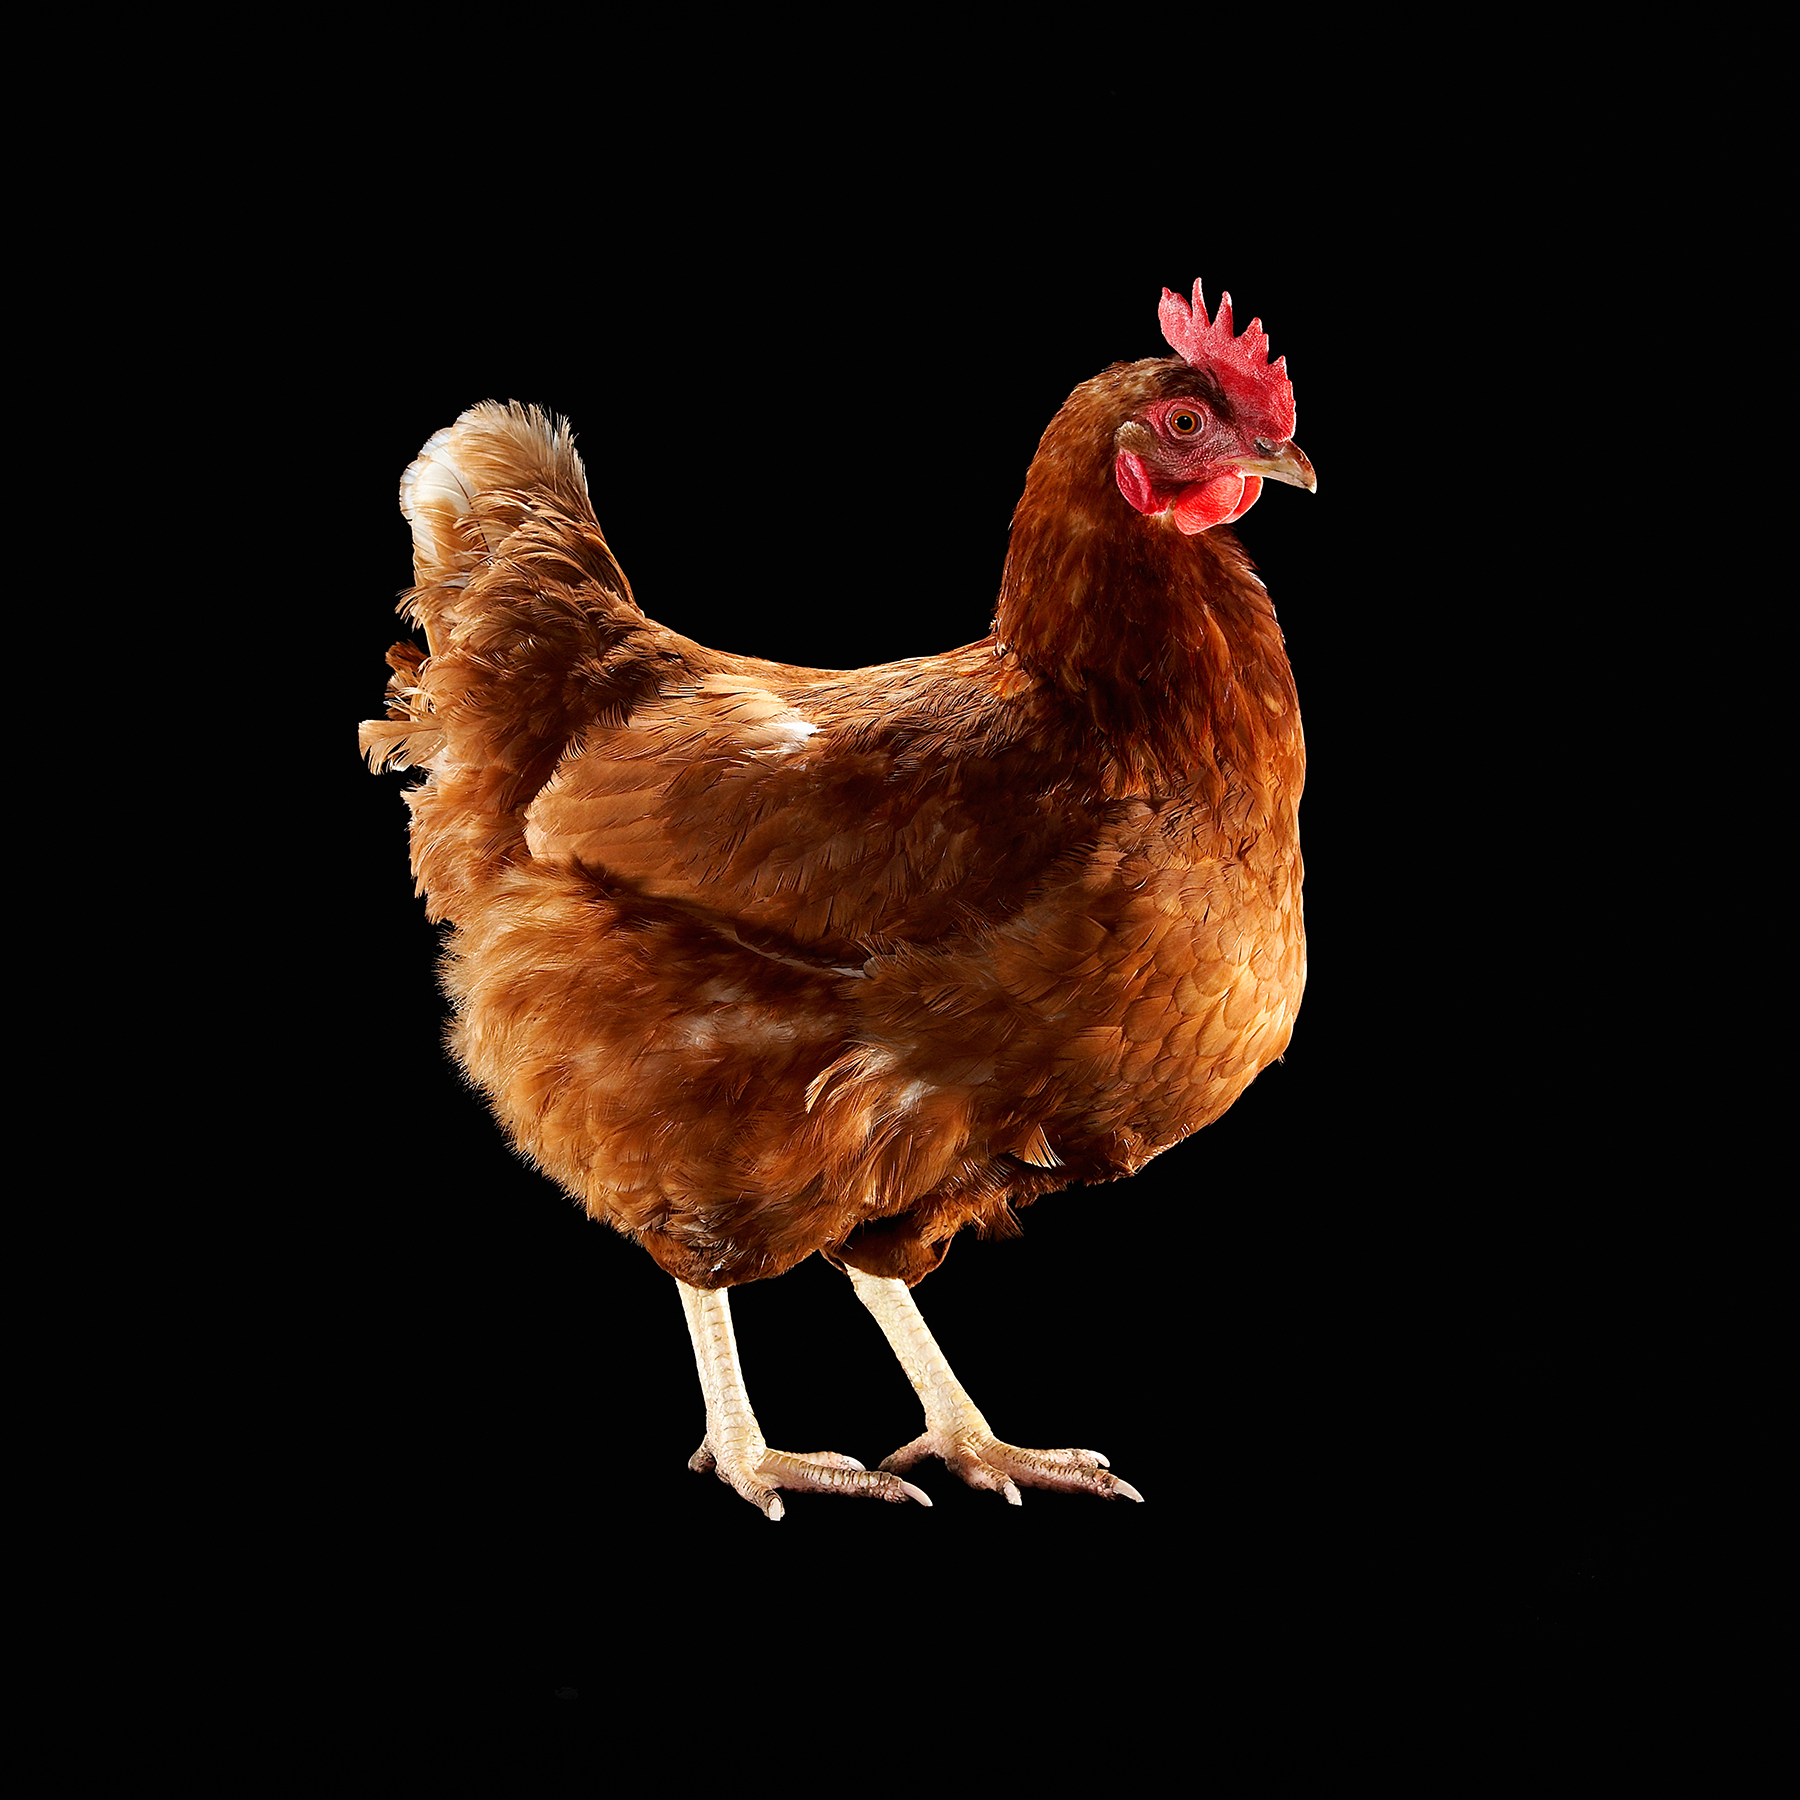 HEN-RHODE-ISLAND-RED-CHICKEN-ORGANIC-LIVESTOCK-©-JONATHAN-R.-BECKERMAN PHOTOGRAPHY.jpg